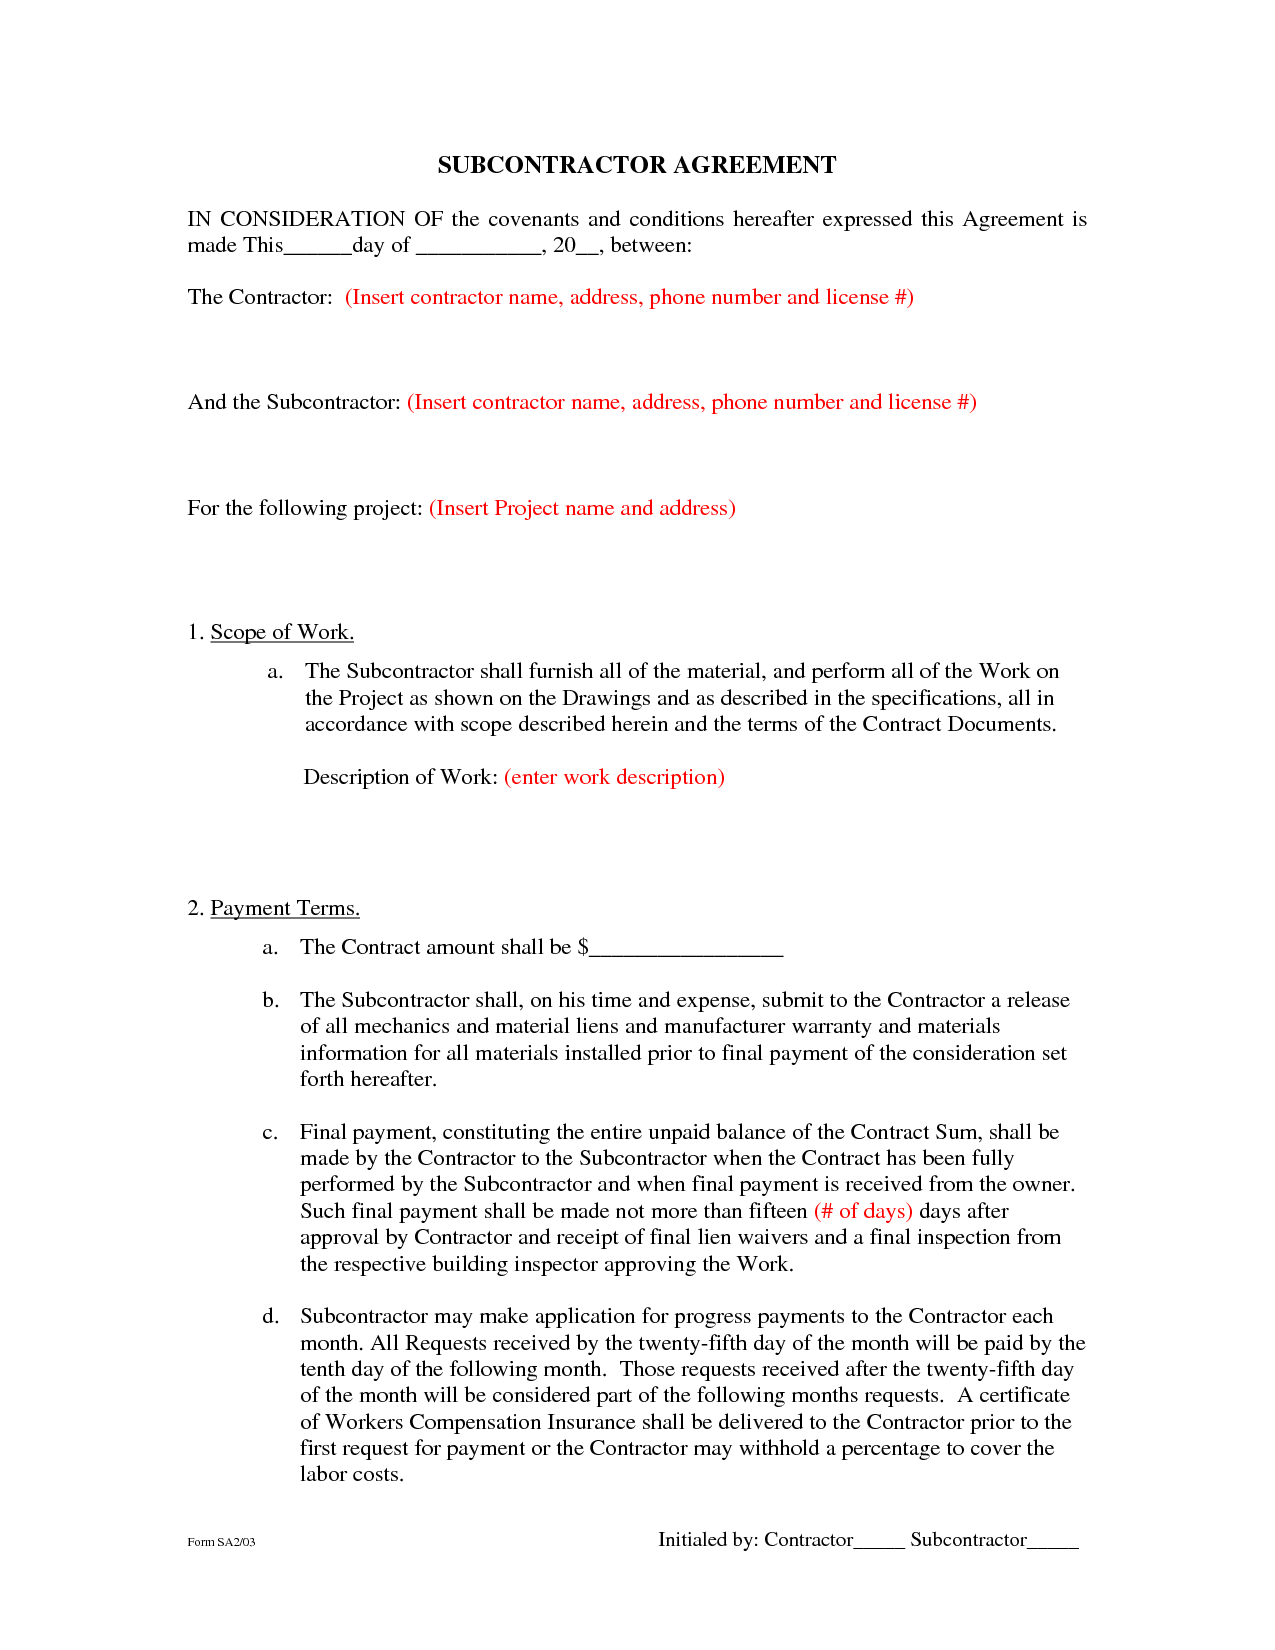 Subcontractor Agreement Template Selol Ink